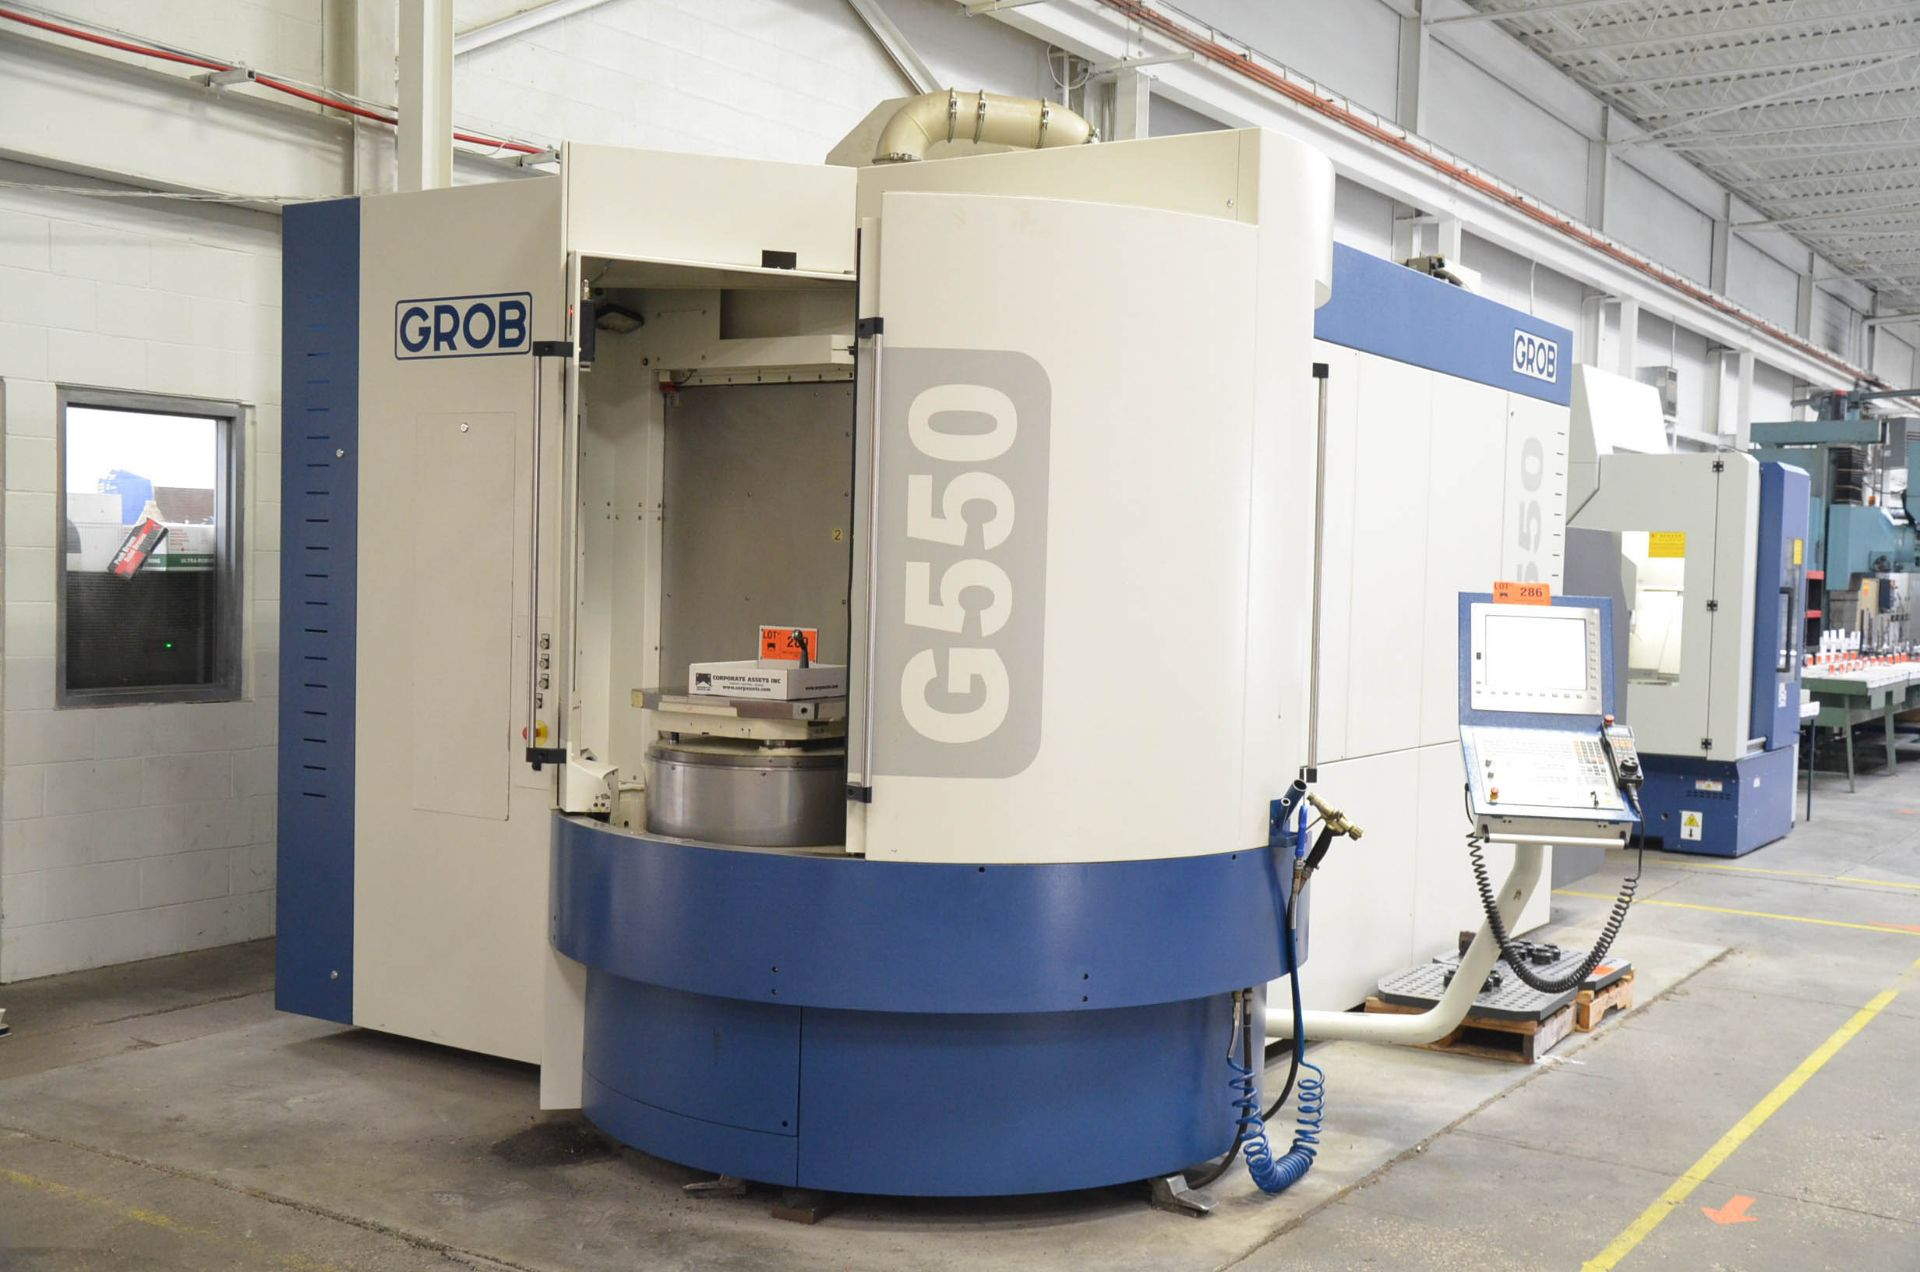 GROB (2014) G550 5-AXIS TWIN PALLET CNC MACHINING CENTER WITH HEIDENHAIN ITNC 530 CNC CONTROL, 24. - Image 5 of 13